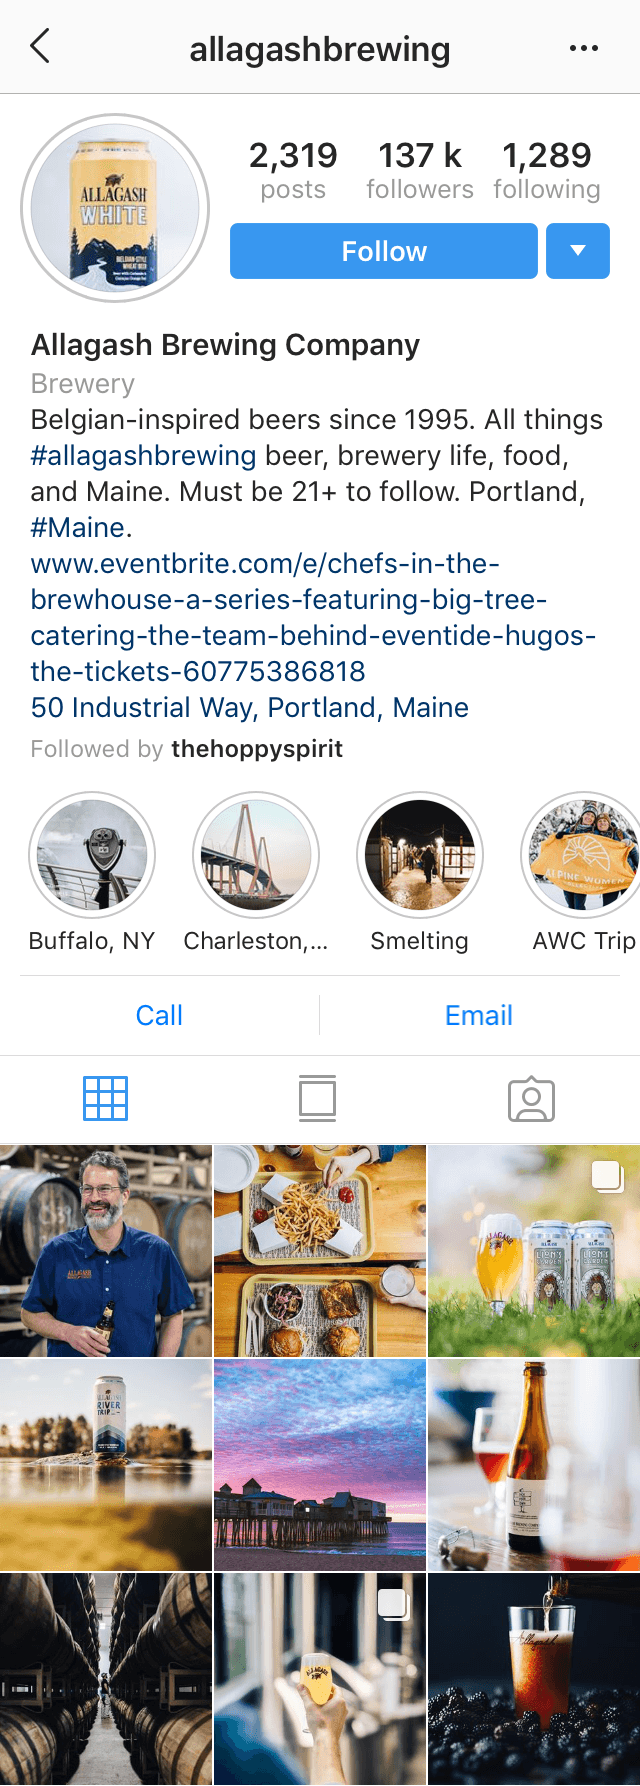 @allagashbrewing Instagram profile